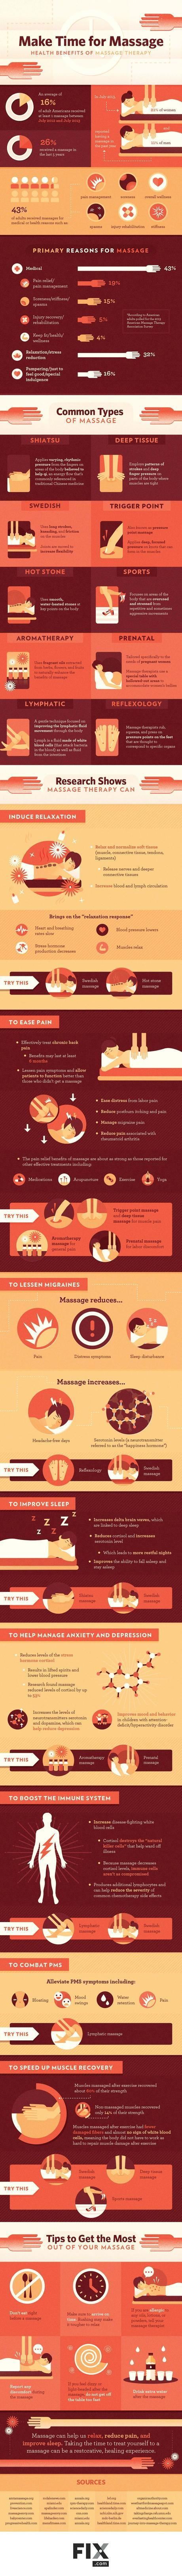 The Numerous Health Benefits Of Massage Therapy #Infographic